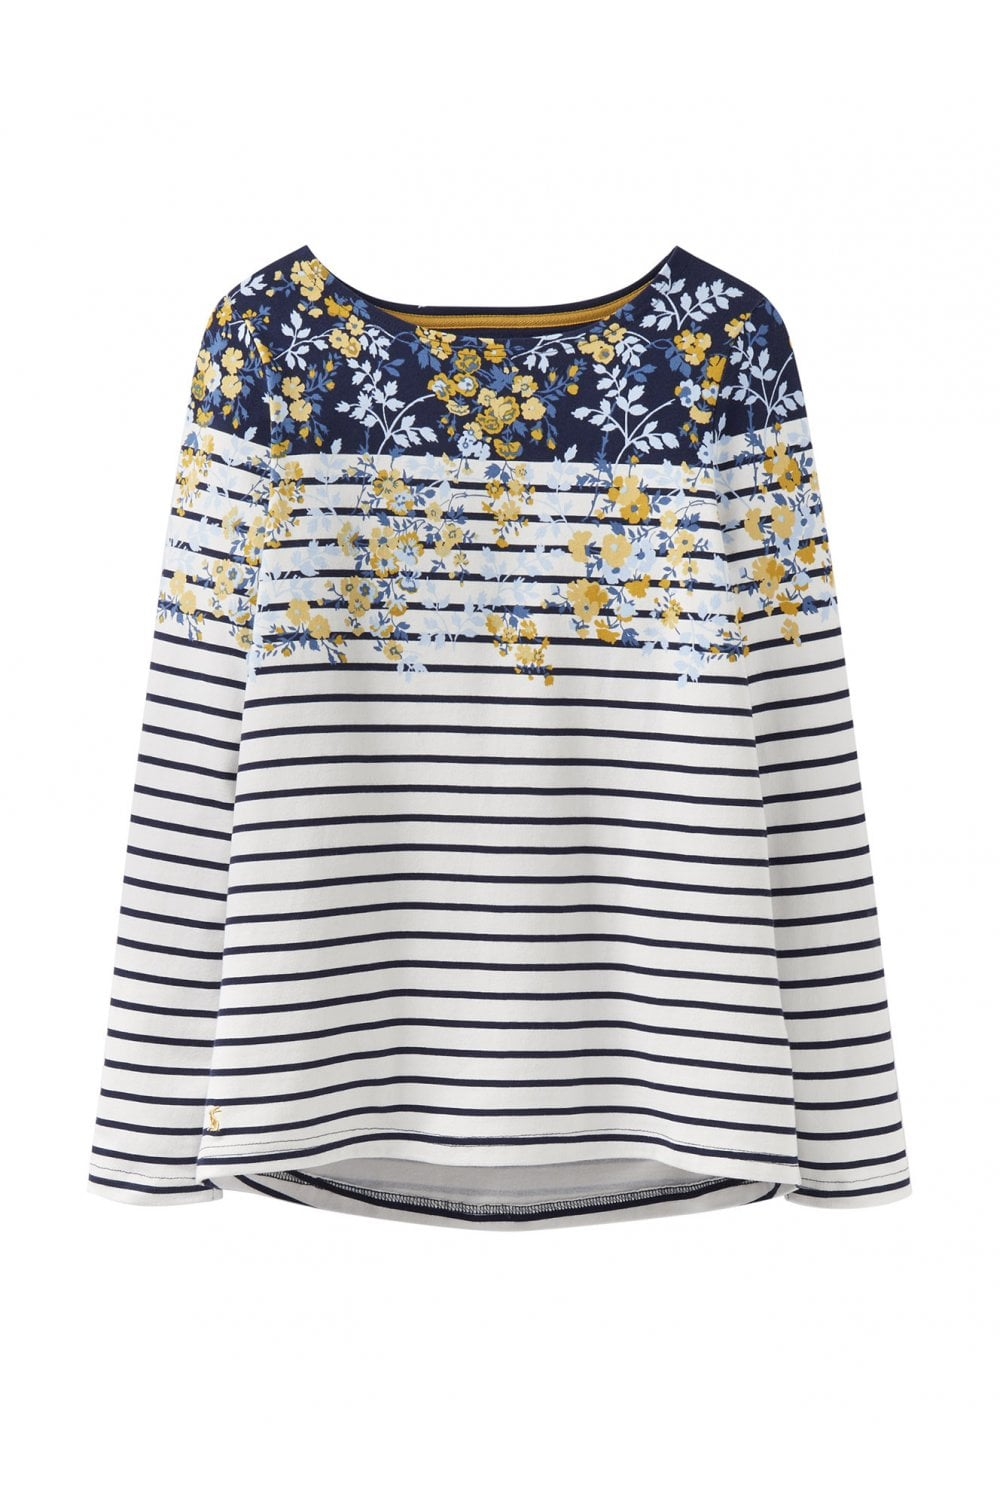 a65108e4c Joules Womens Harbour Printed Jersey Top - Navy Gold Ditsy ...